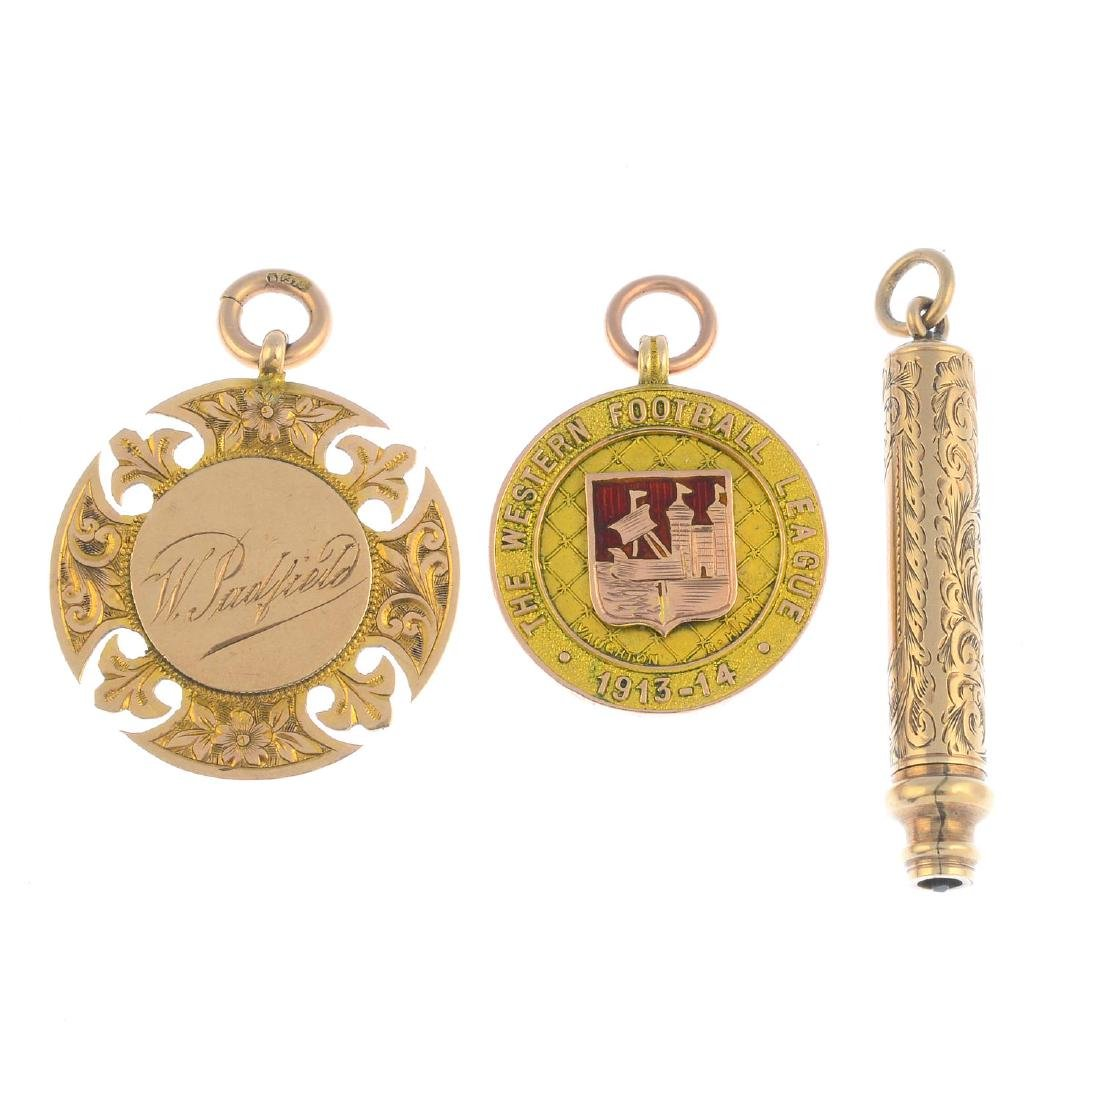 Two early 20th century 9ct gold medals and a